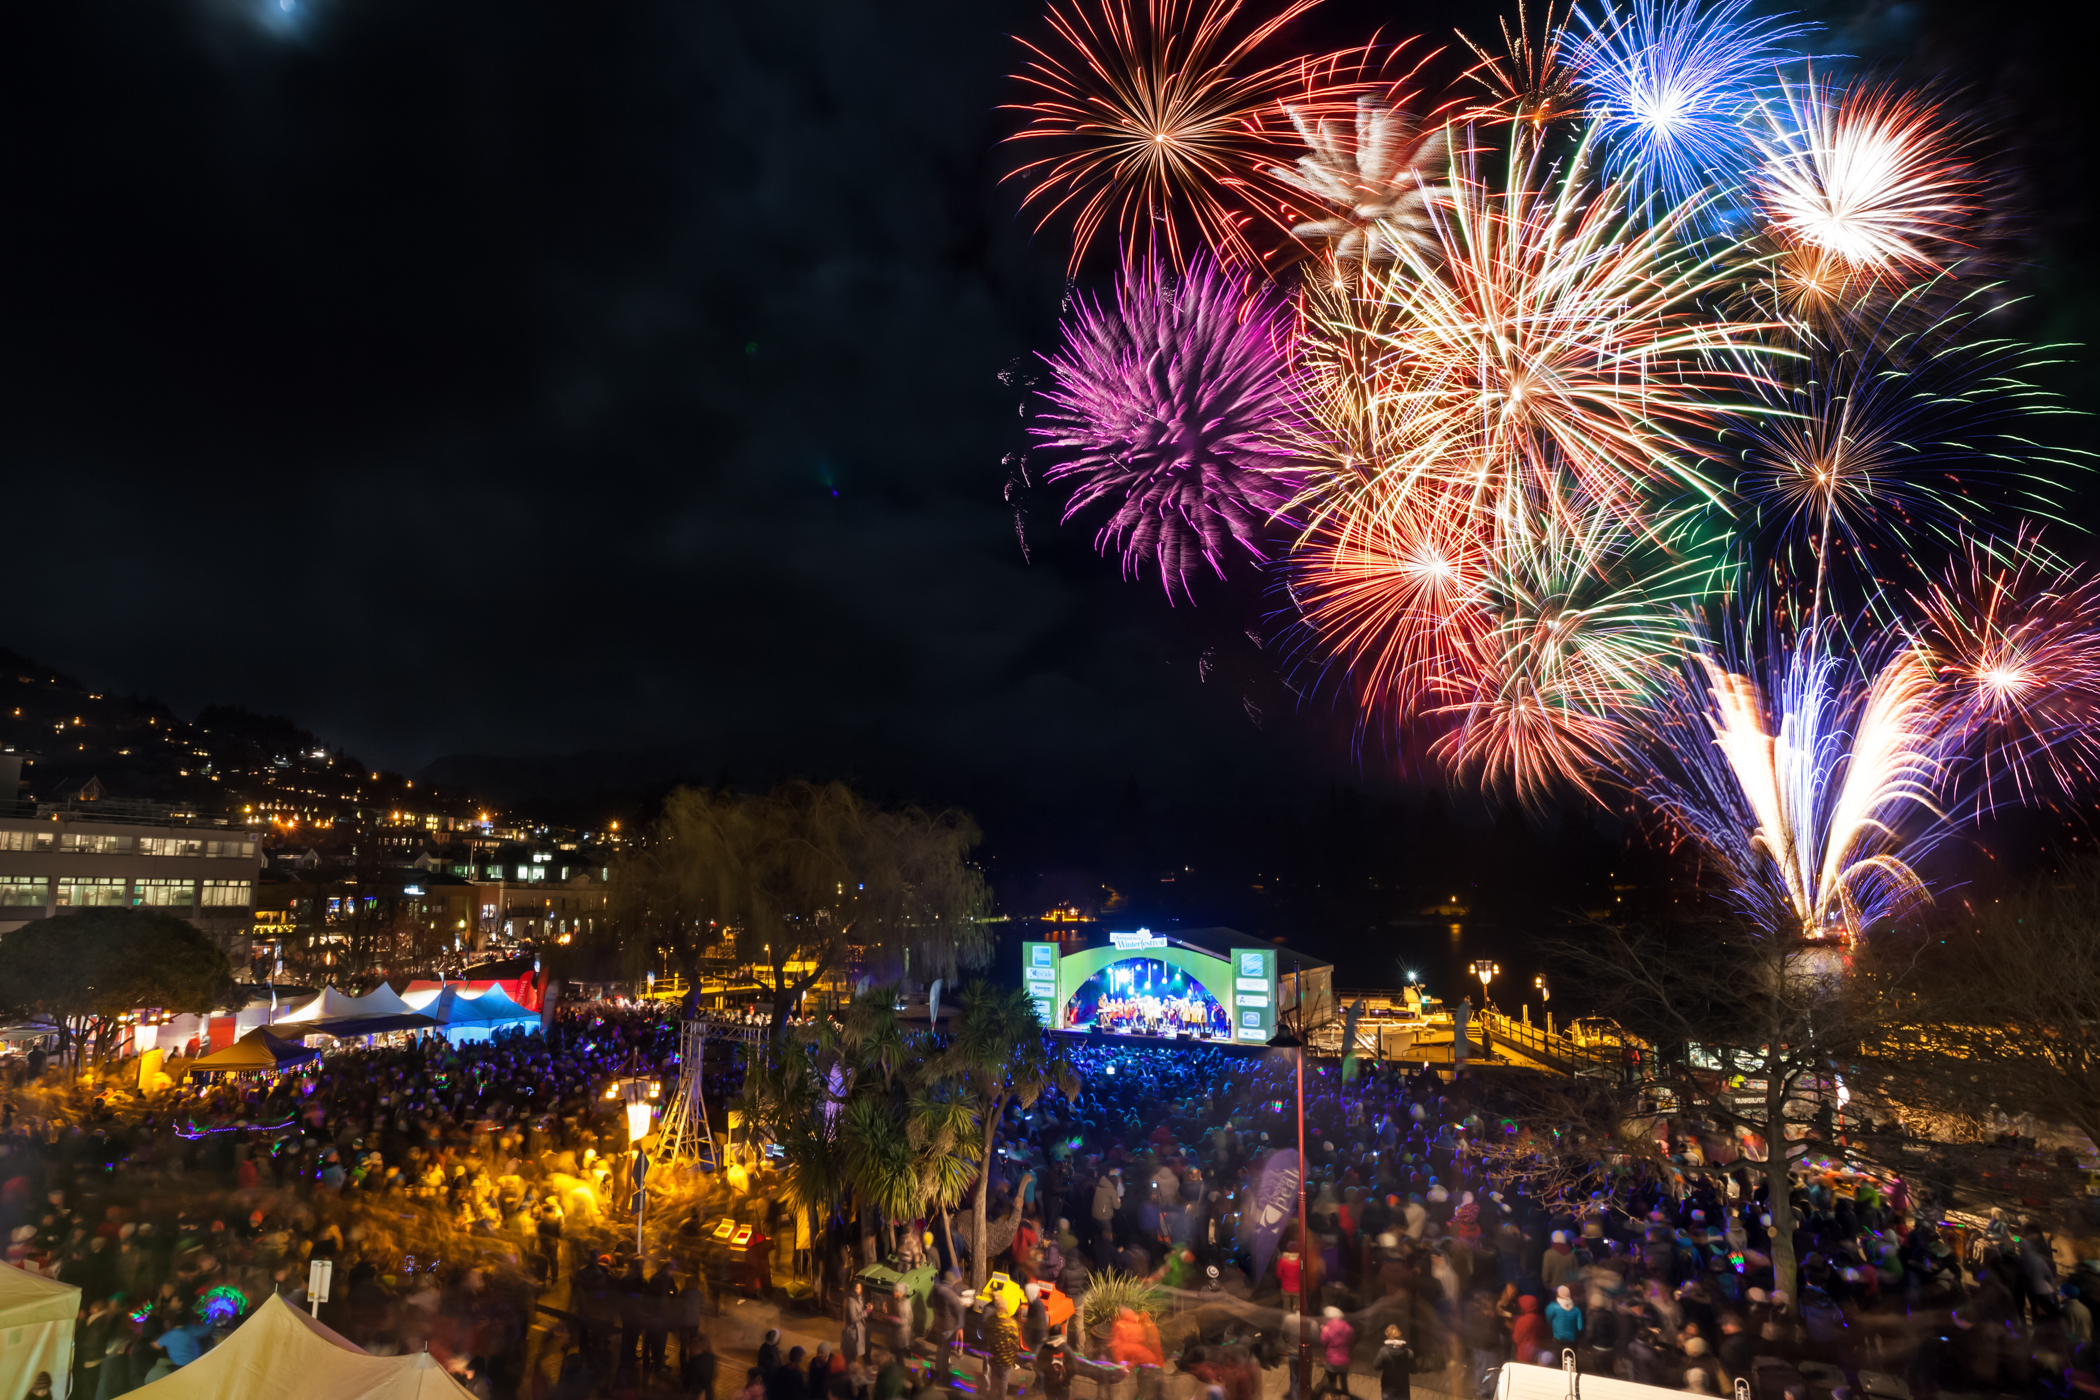 New Year's Eve in Queenstown – Take the Lake!